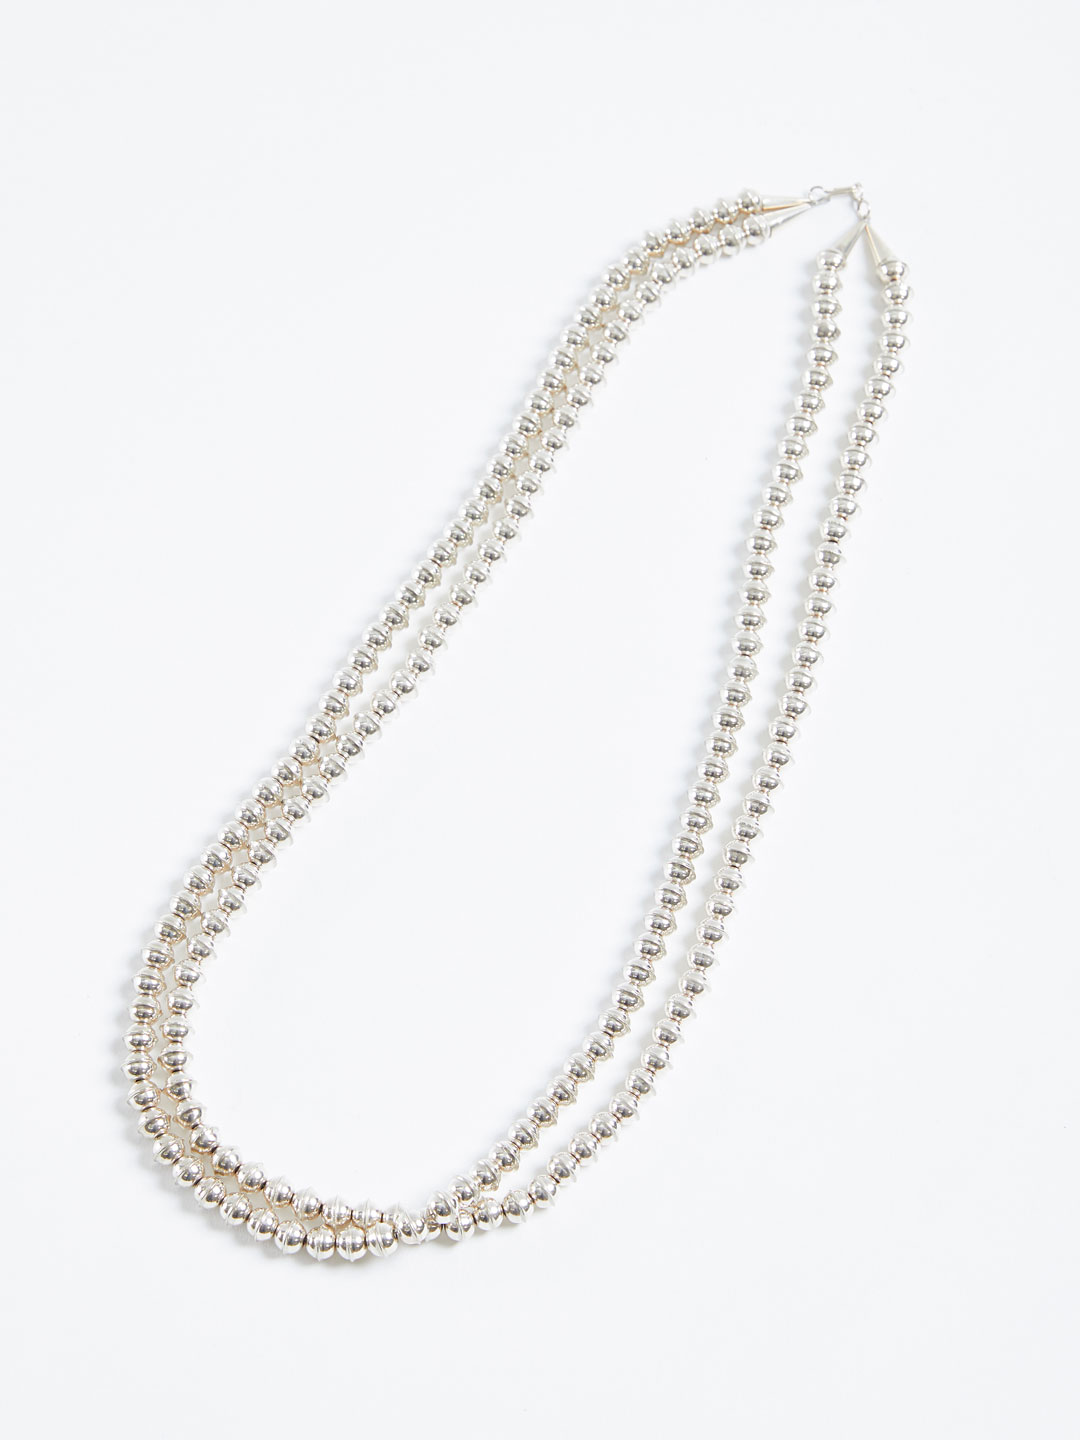 2 Strands 8mm Beads Necklace - Silver